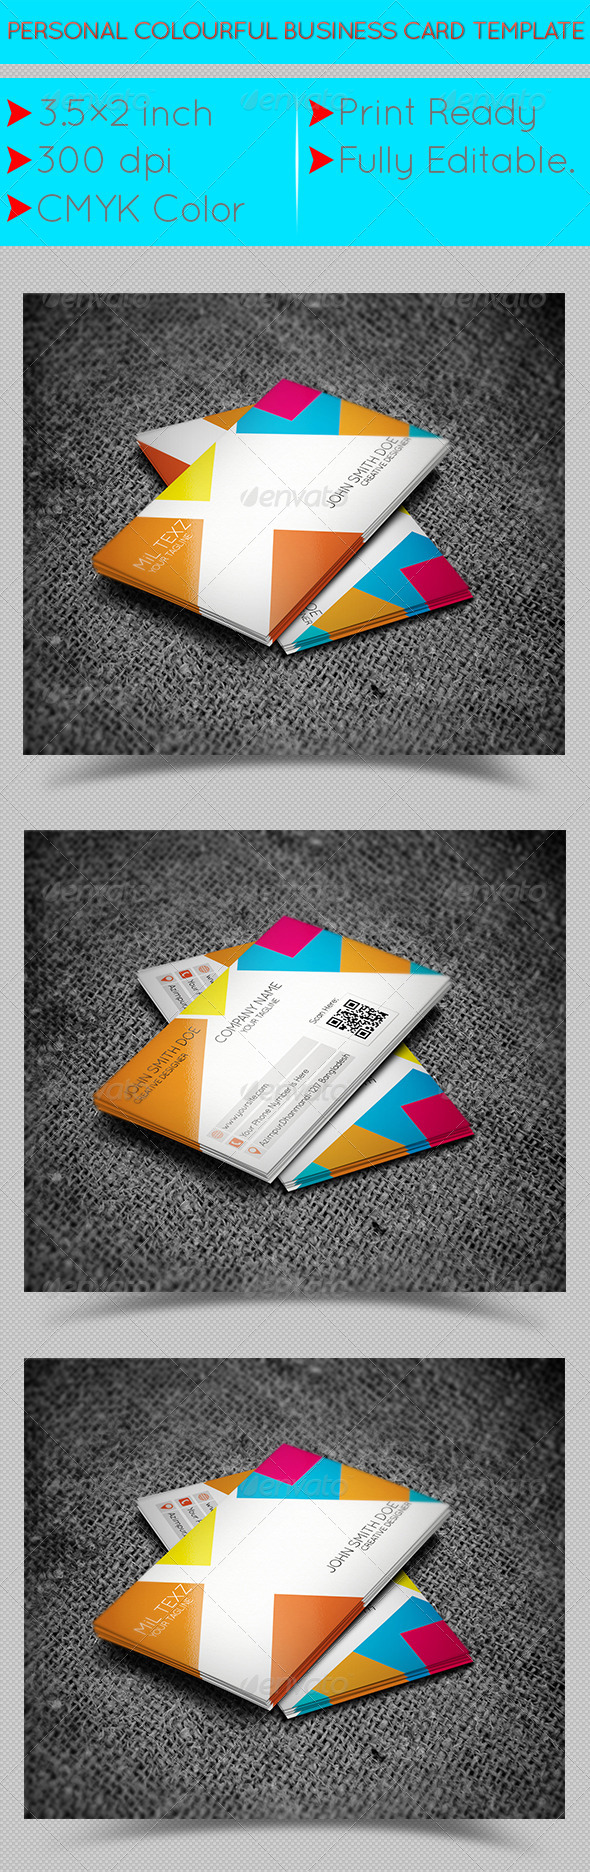 GraphicRiver Personal Colourful Business Card Template 7389200